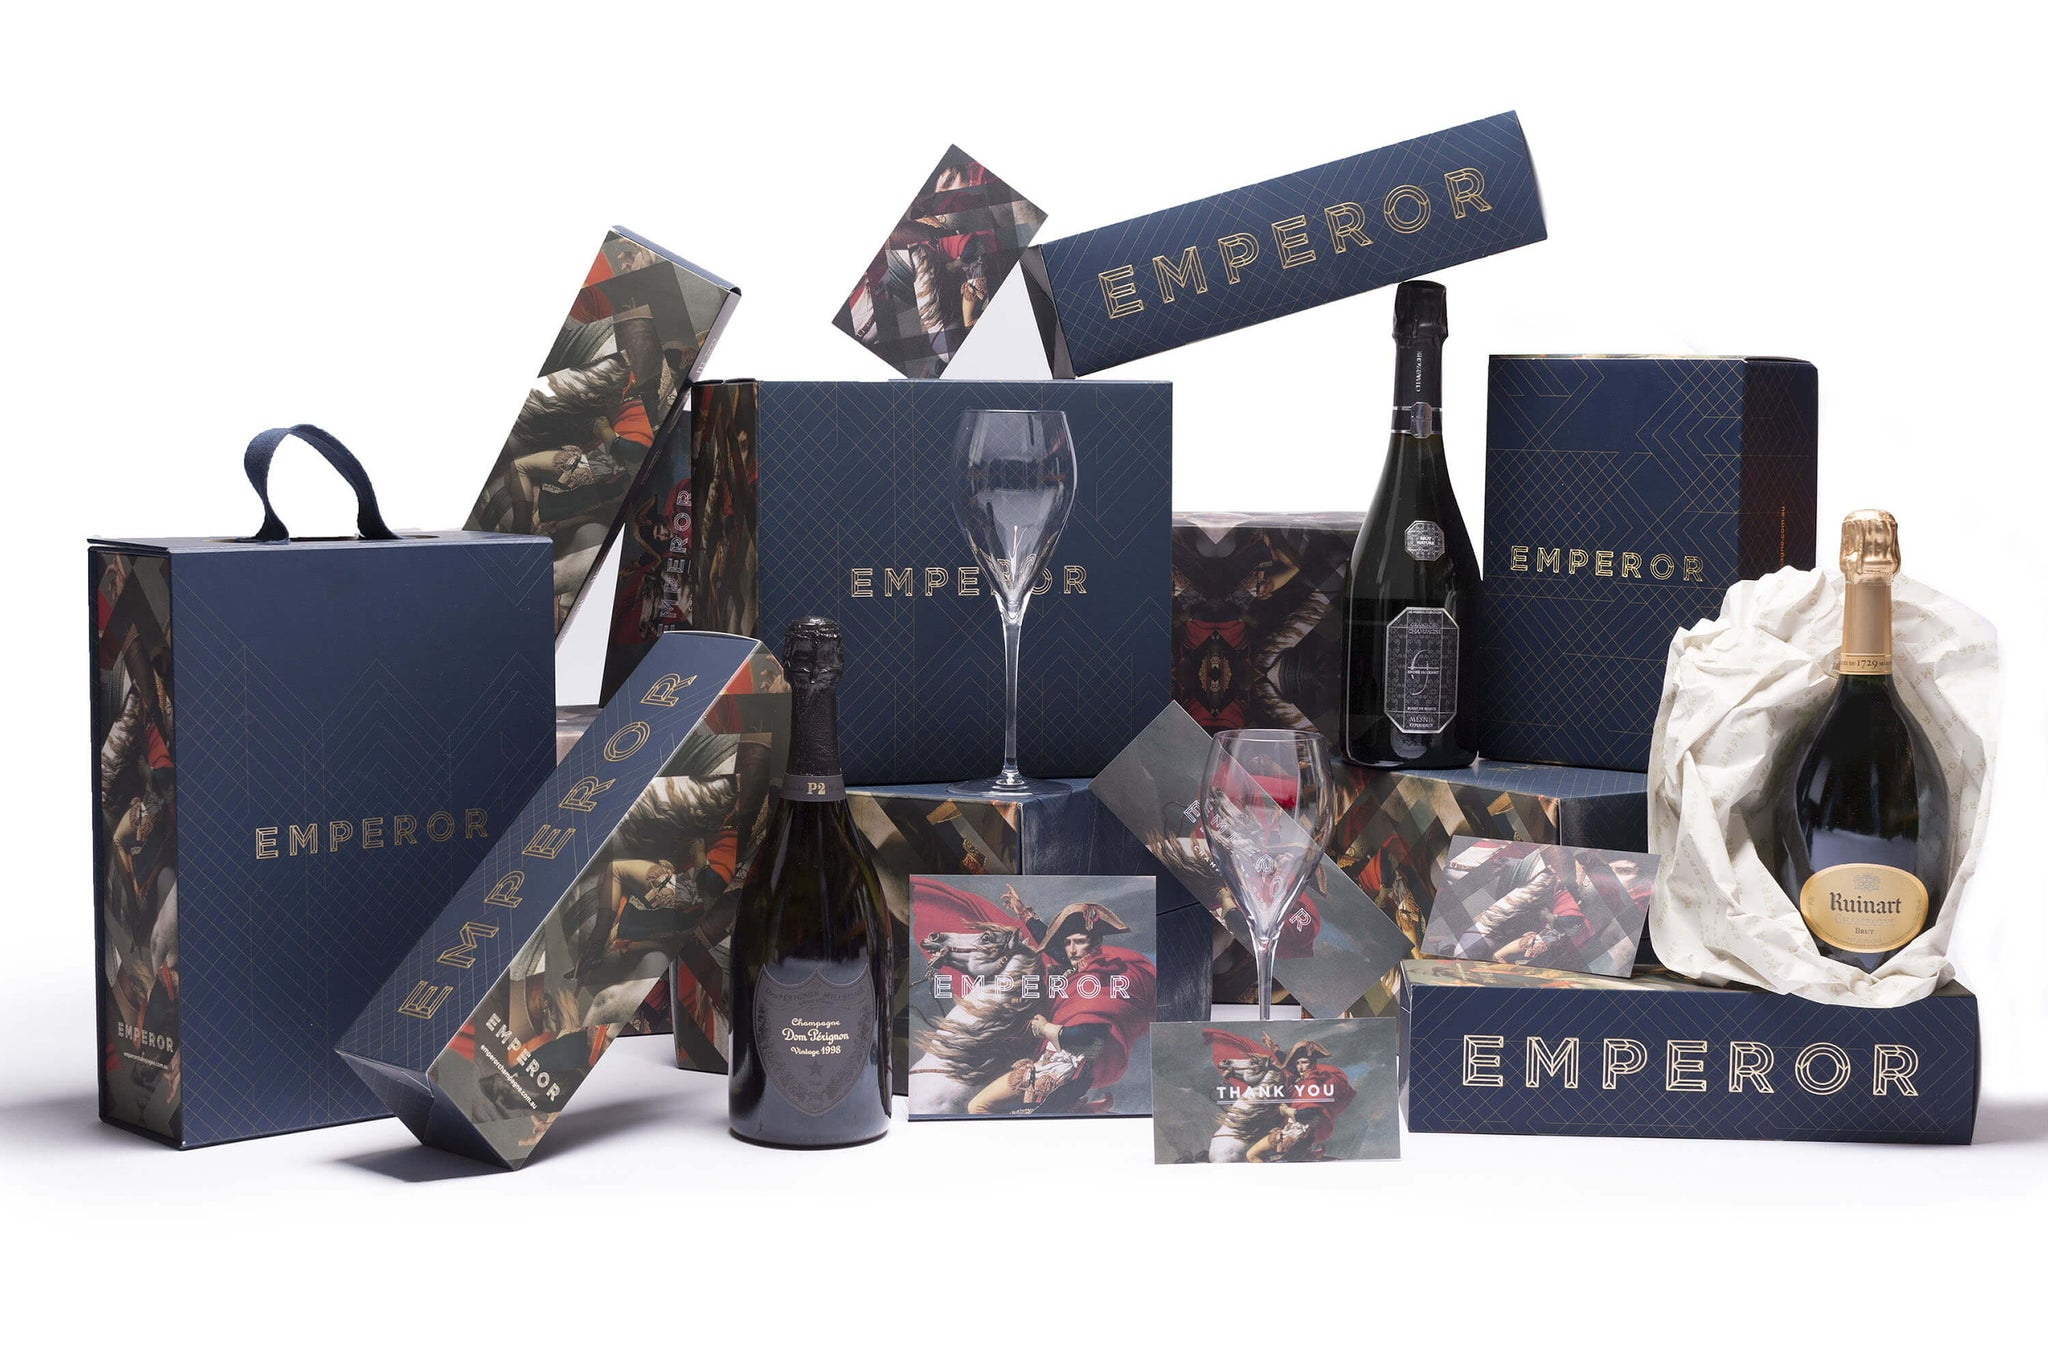 Emperor : Behind the Brand